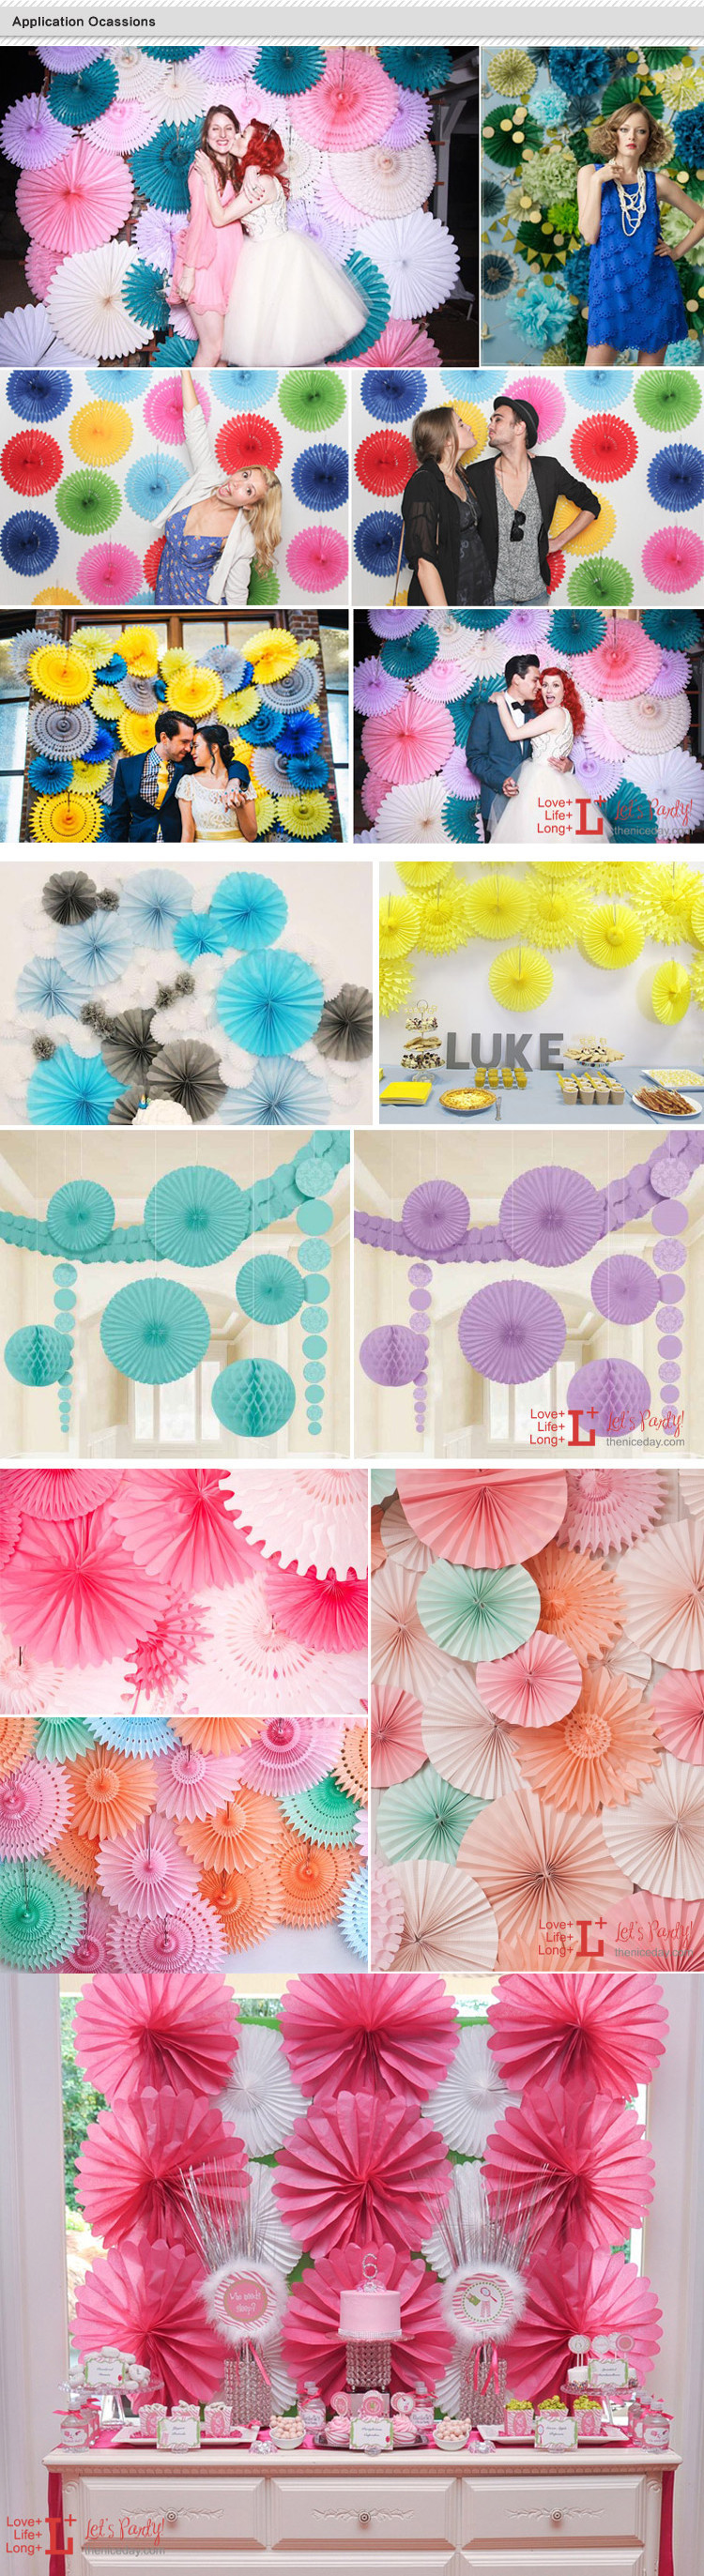 "Free Shipping 10pcs Medium 12"" Hanging Paper Fans Tissue Fans for Wedding Baby Bridal Shower Birthday Party Decoration-inDecorative Flowers ..."